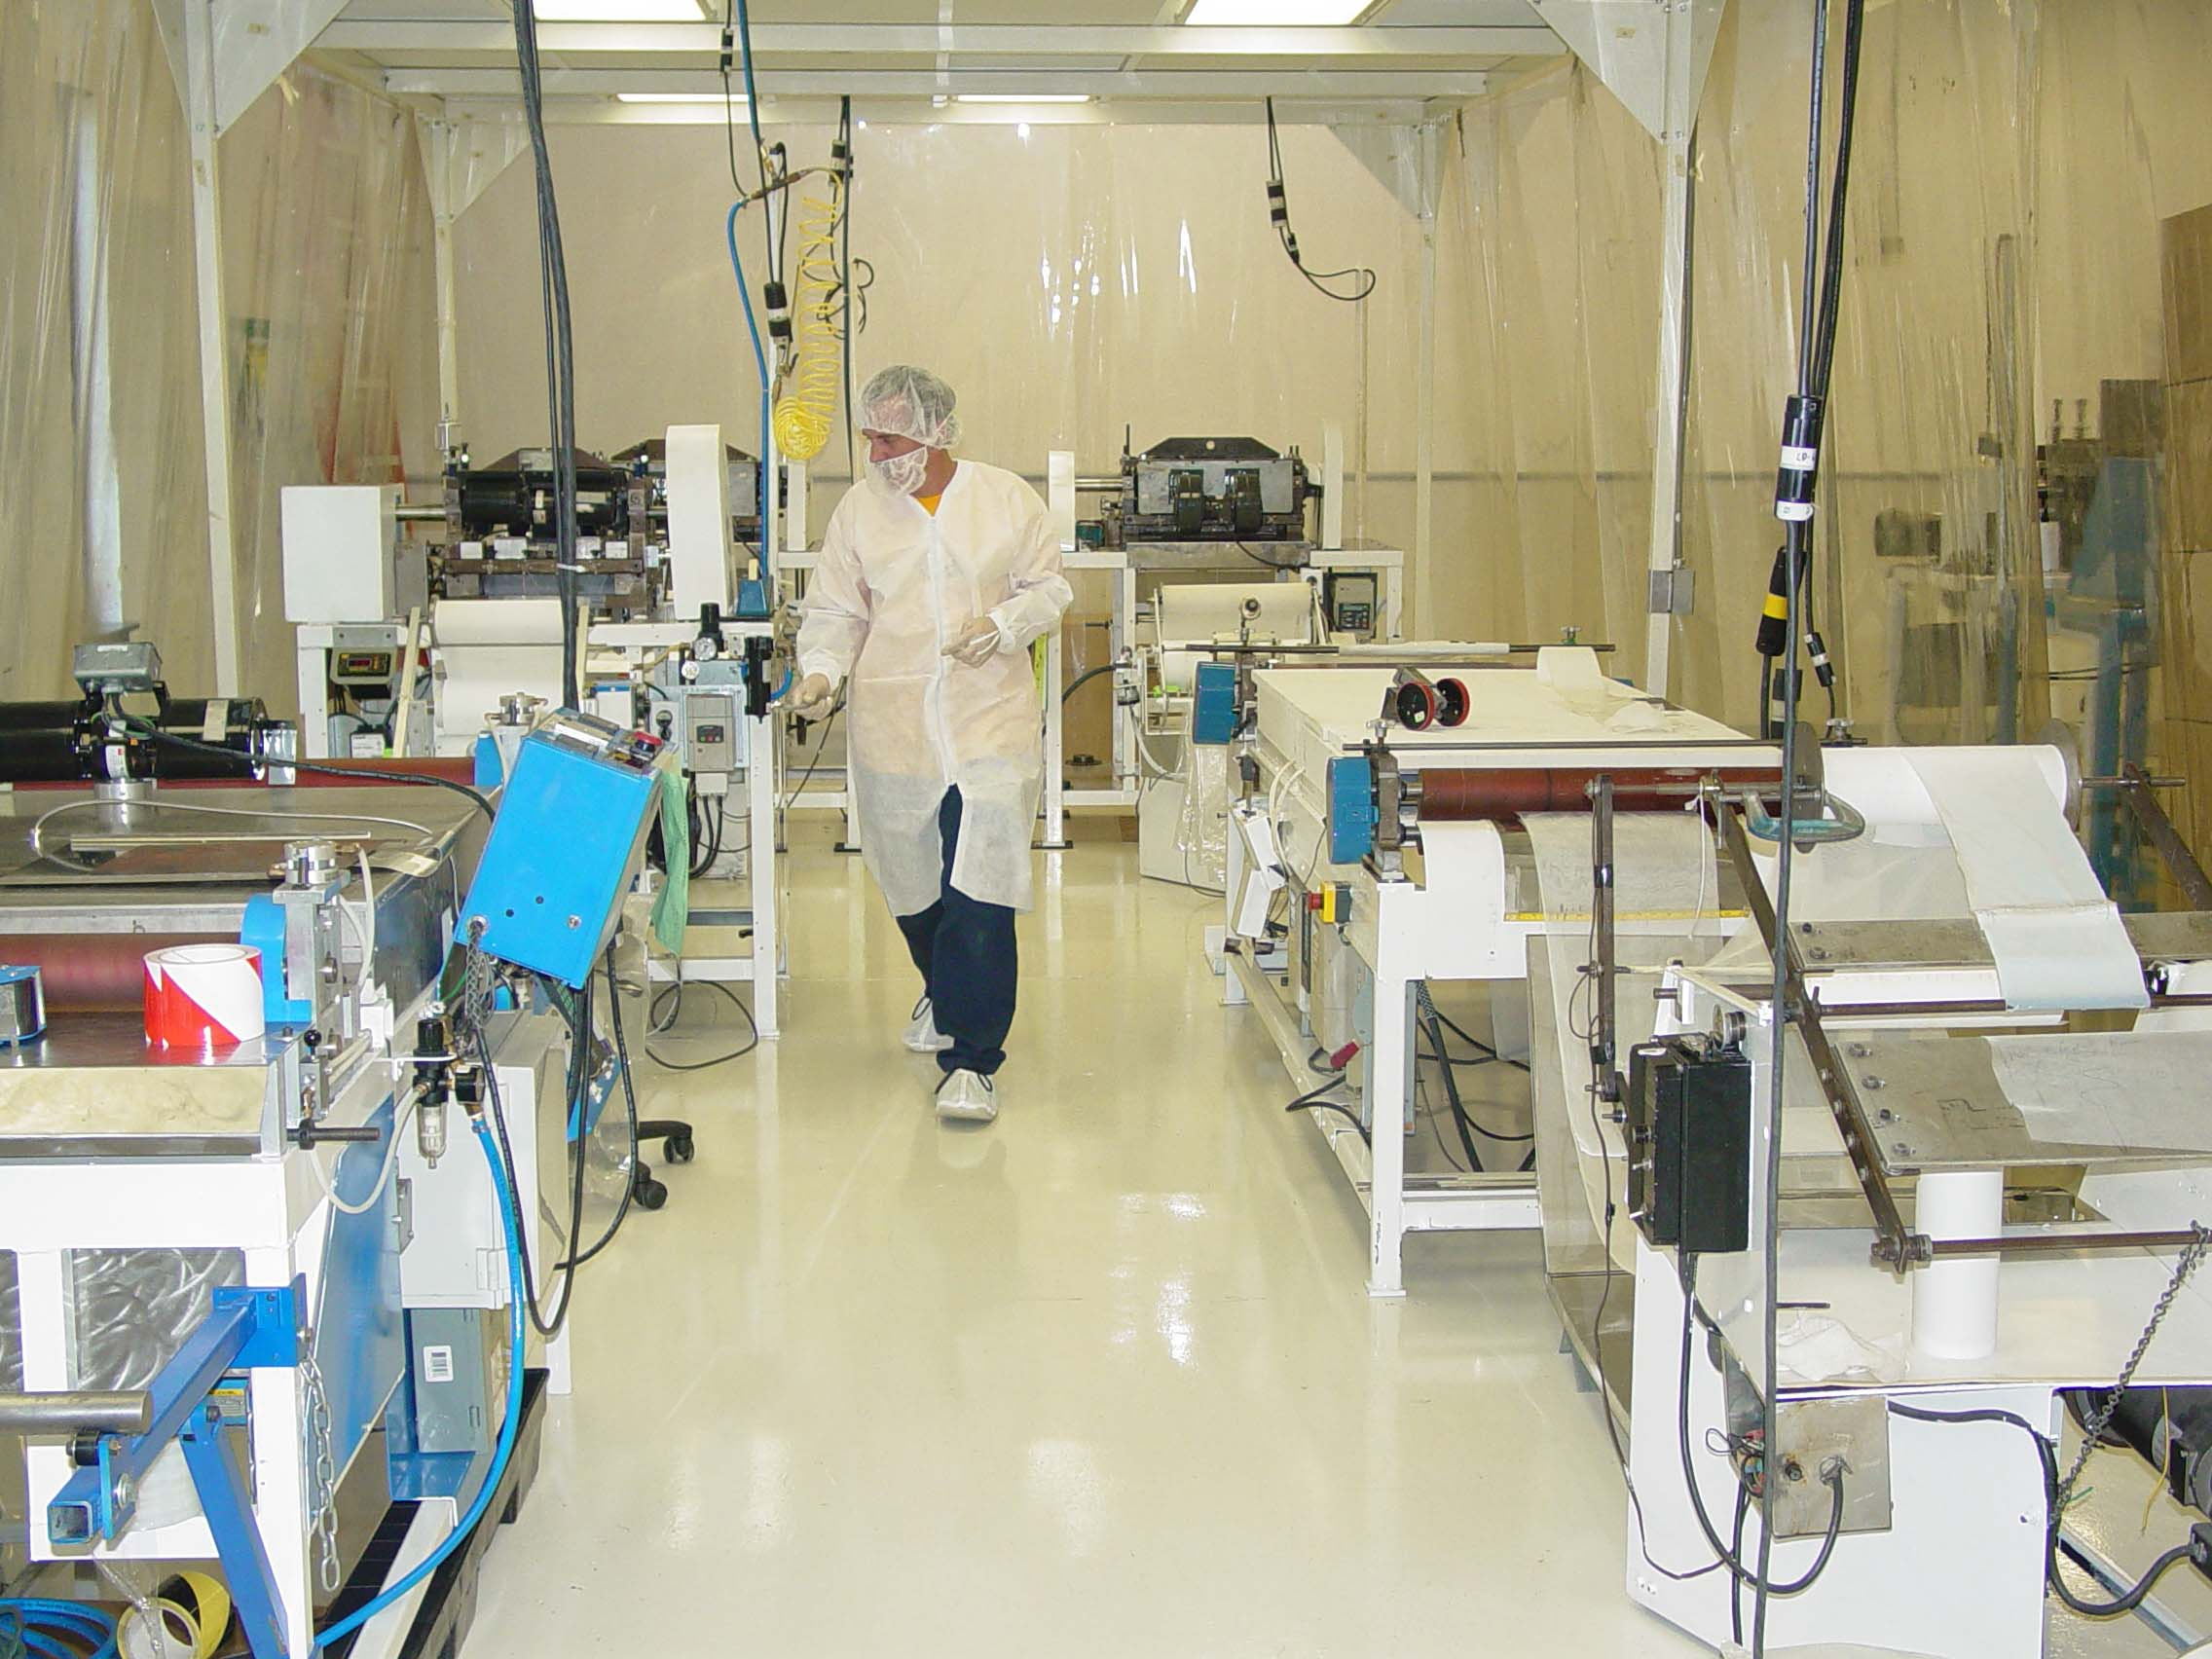 class 10,000 clean room for reducing contaminants